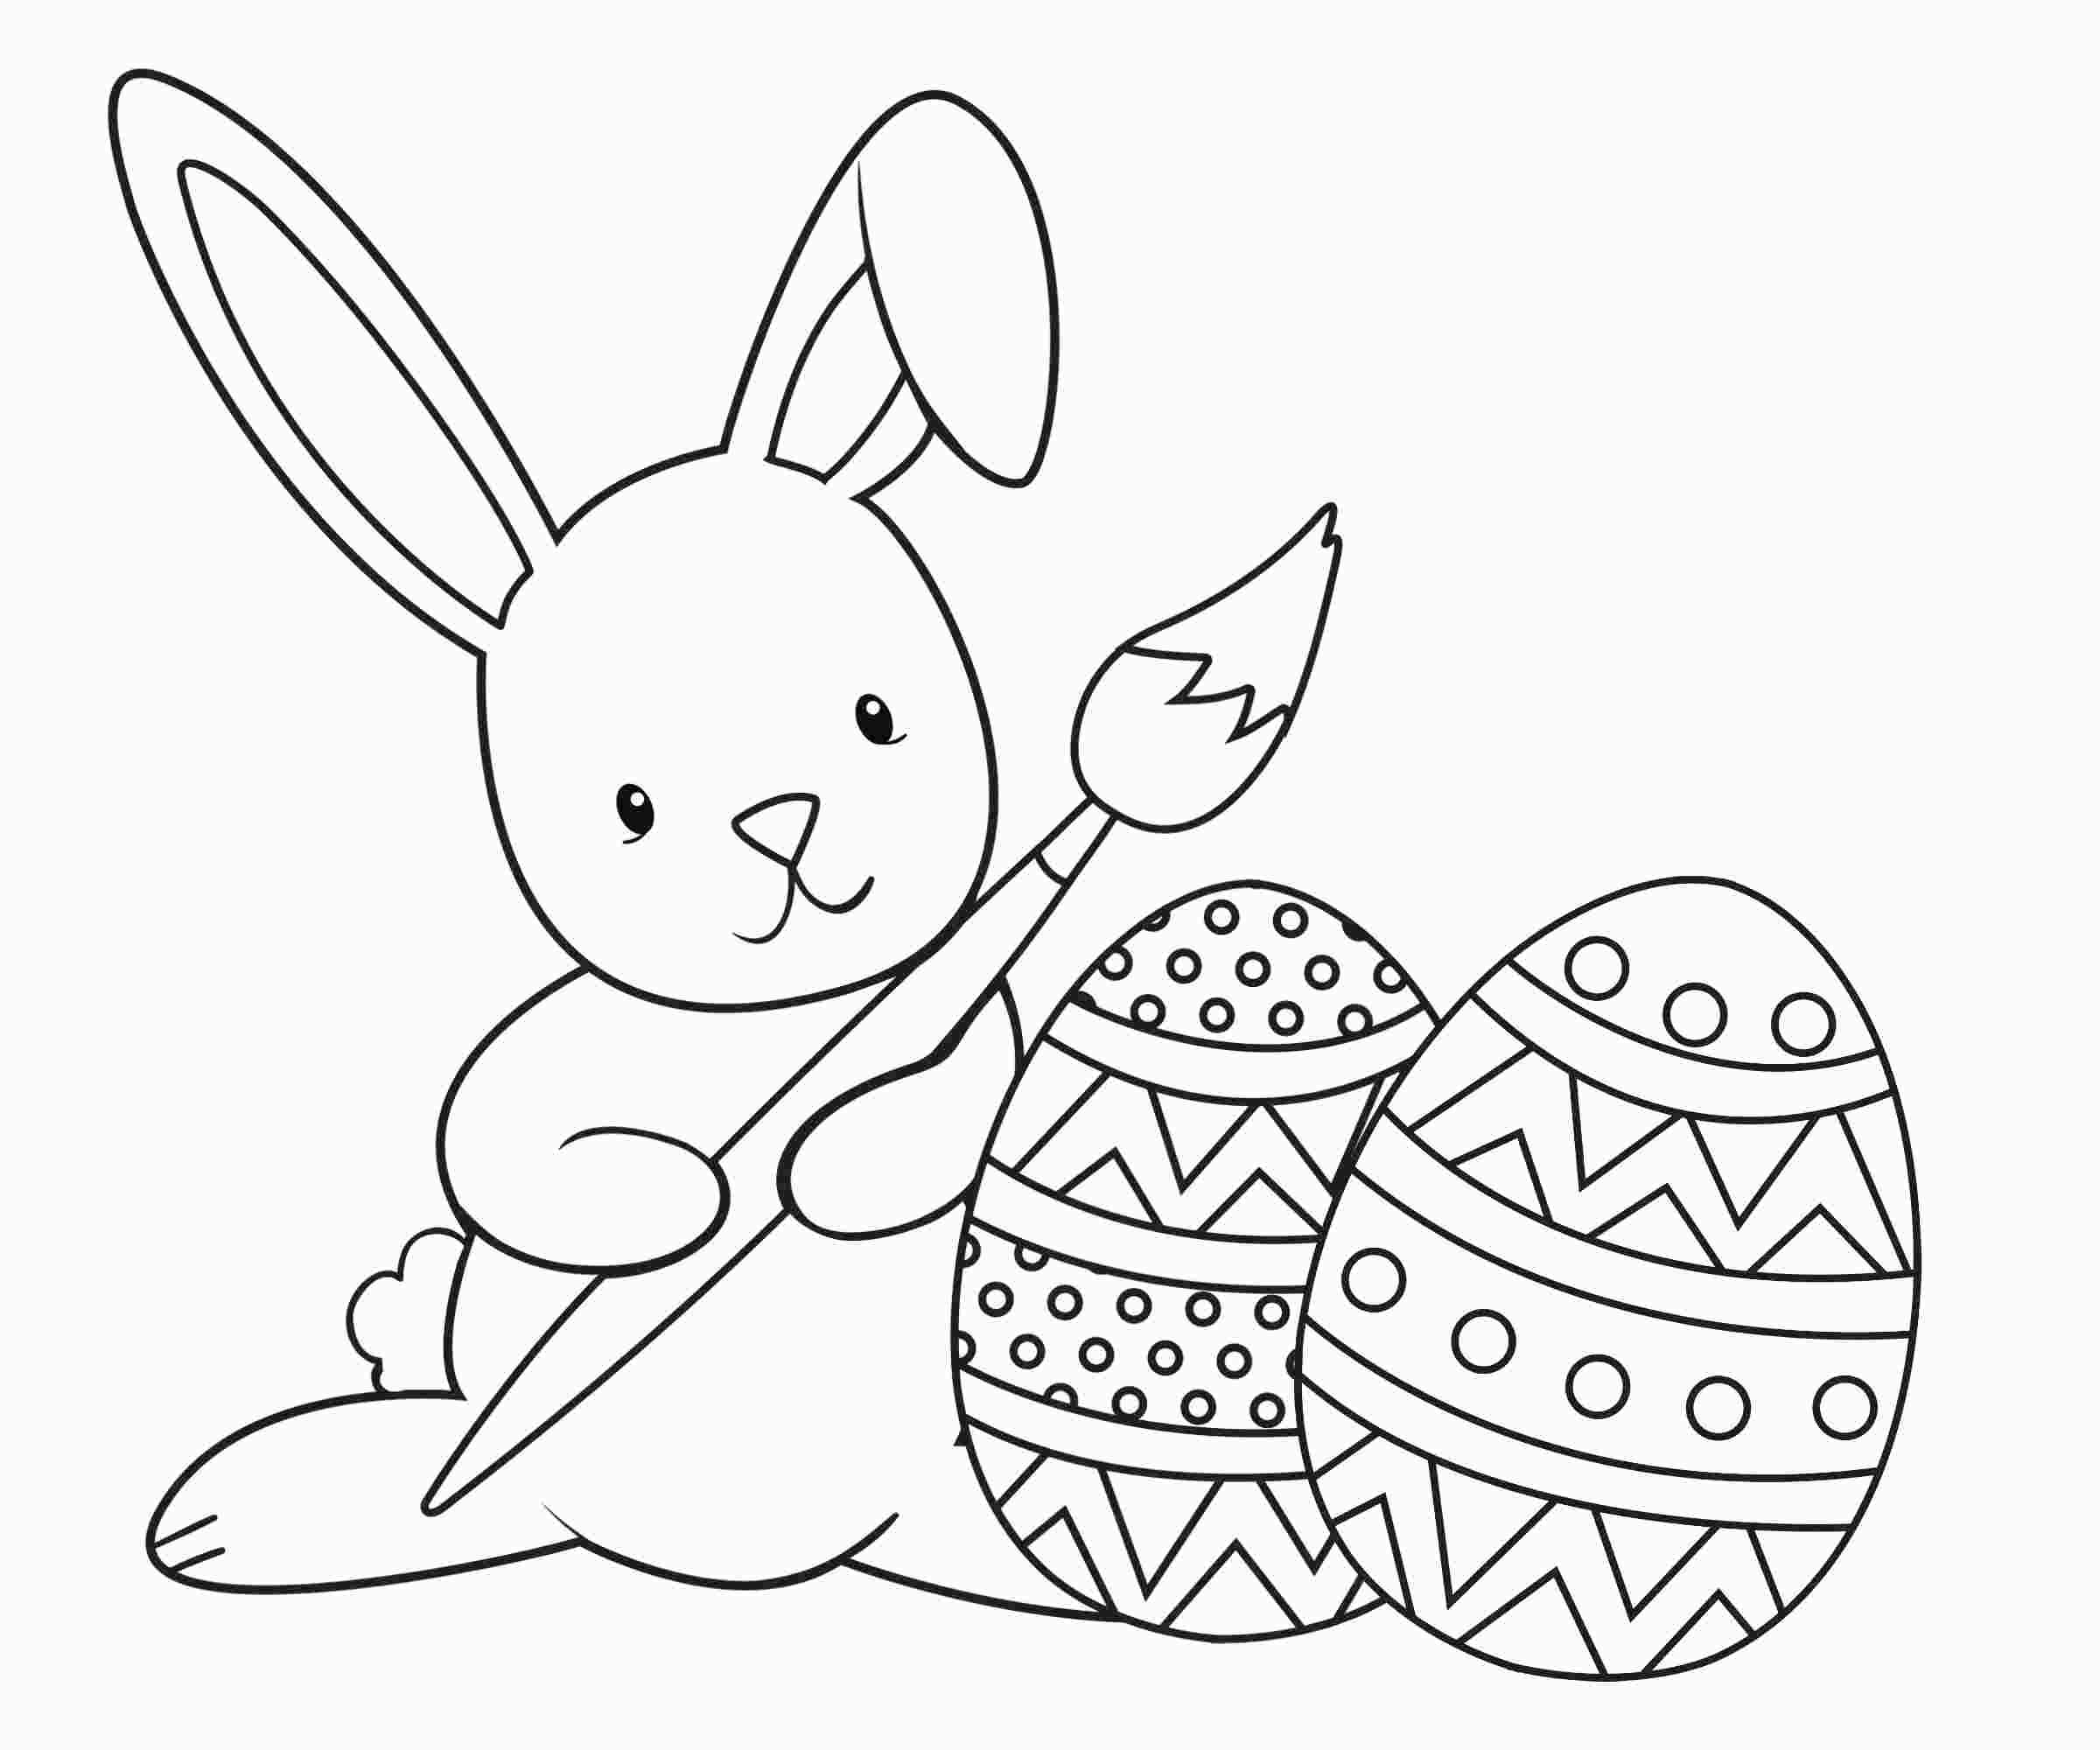 - Easter Bunny Coloring Pages Easter Coloring Pages, Easter